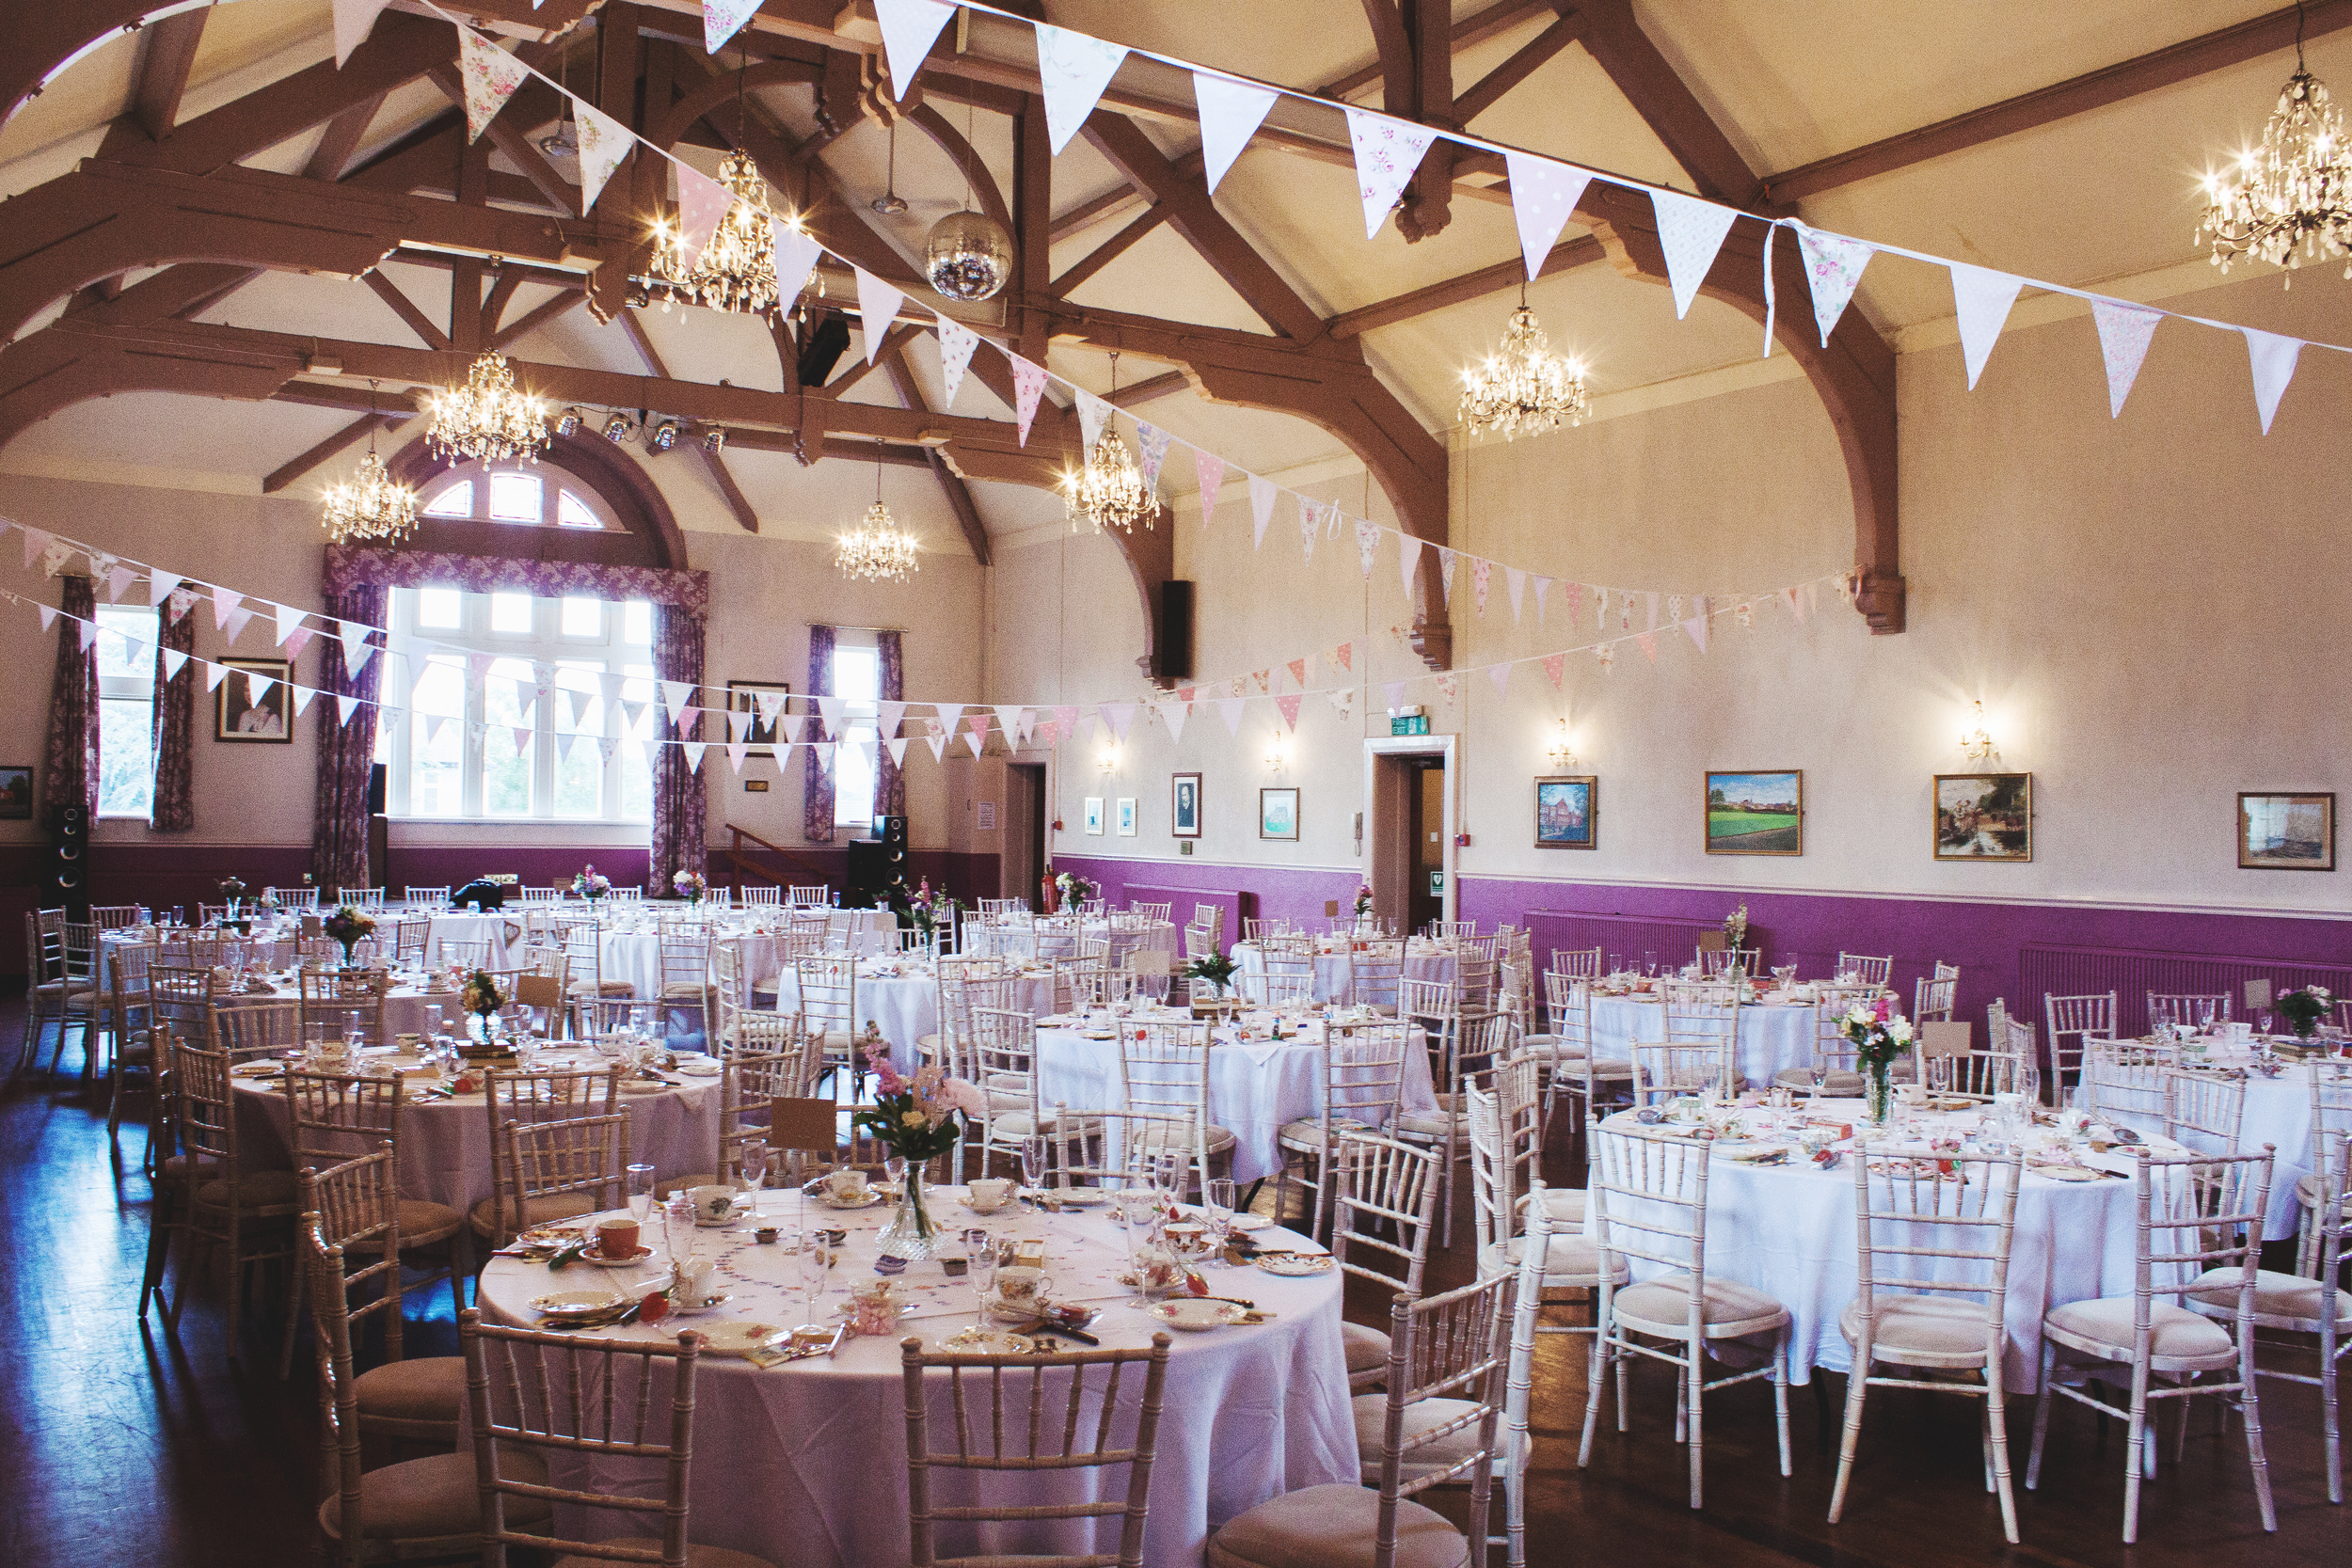 Rainford Village Hall Wedding